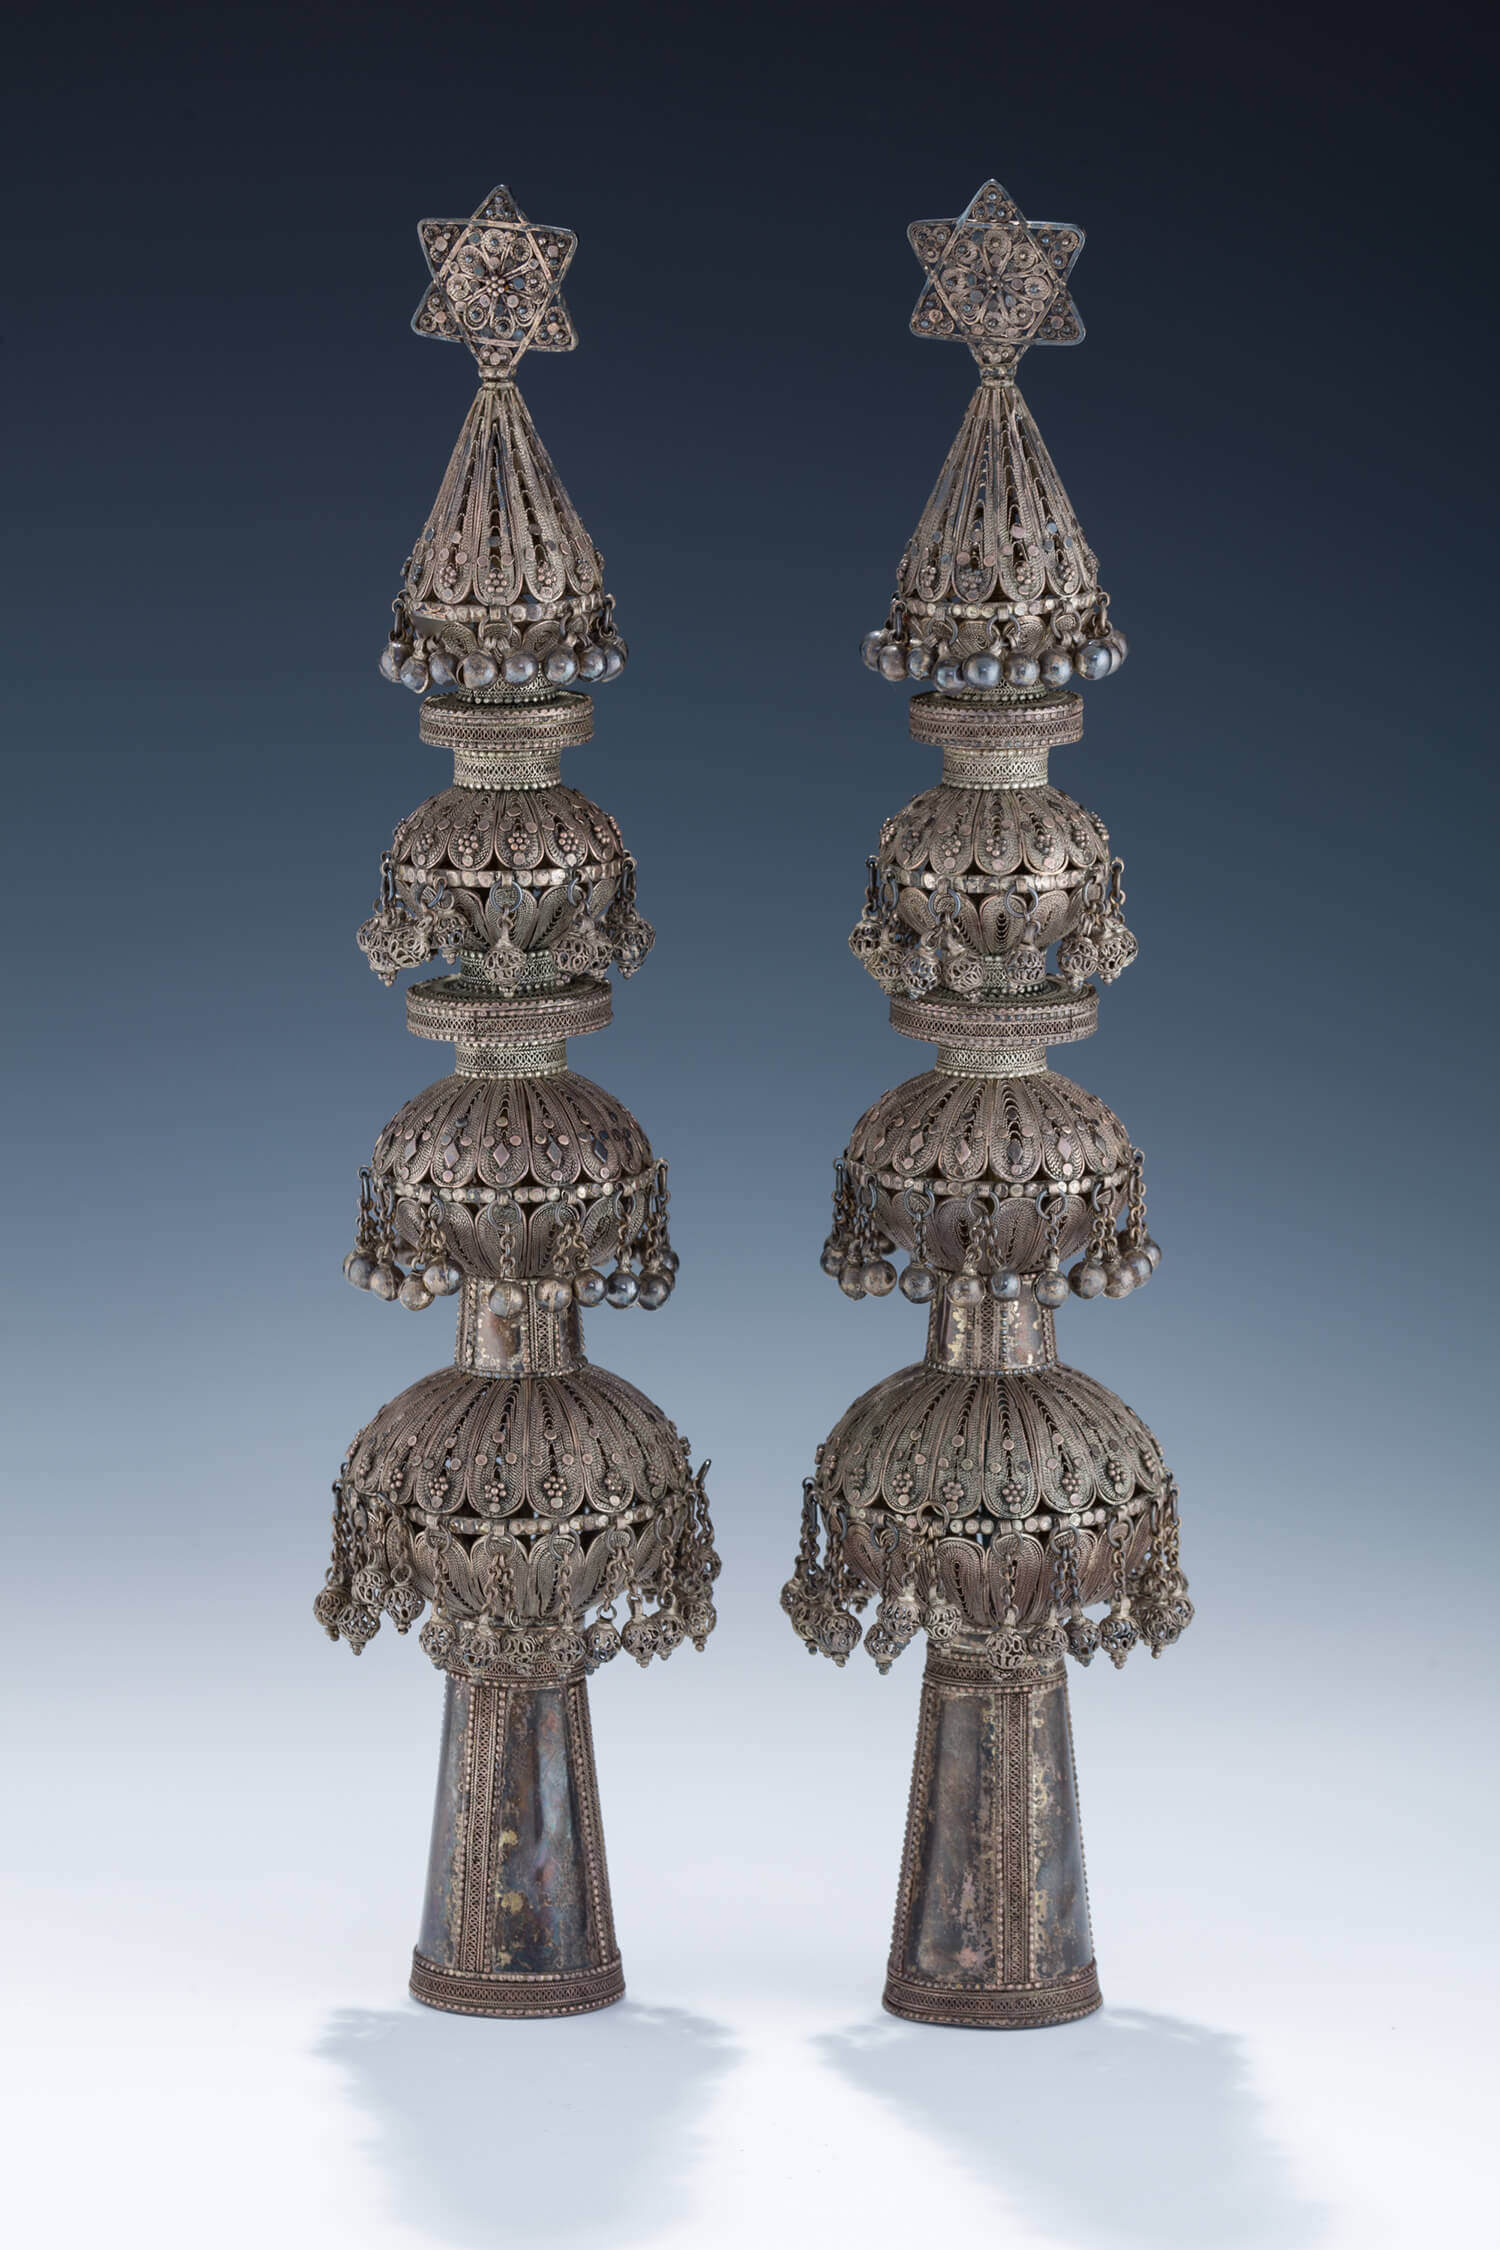 090. A PAIR OF SILVER TORAH FINIALS